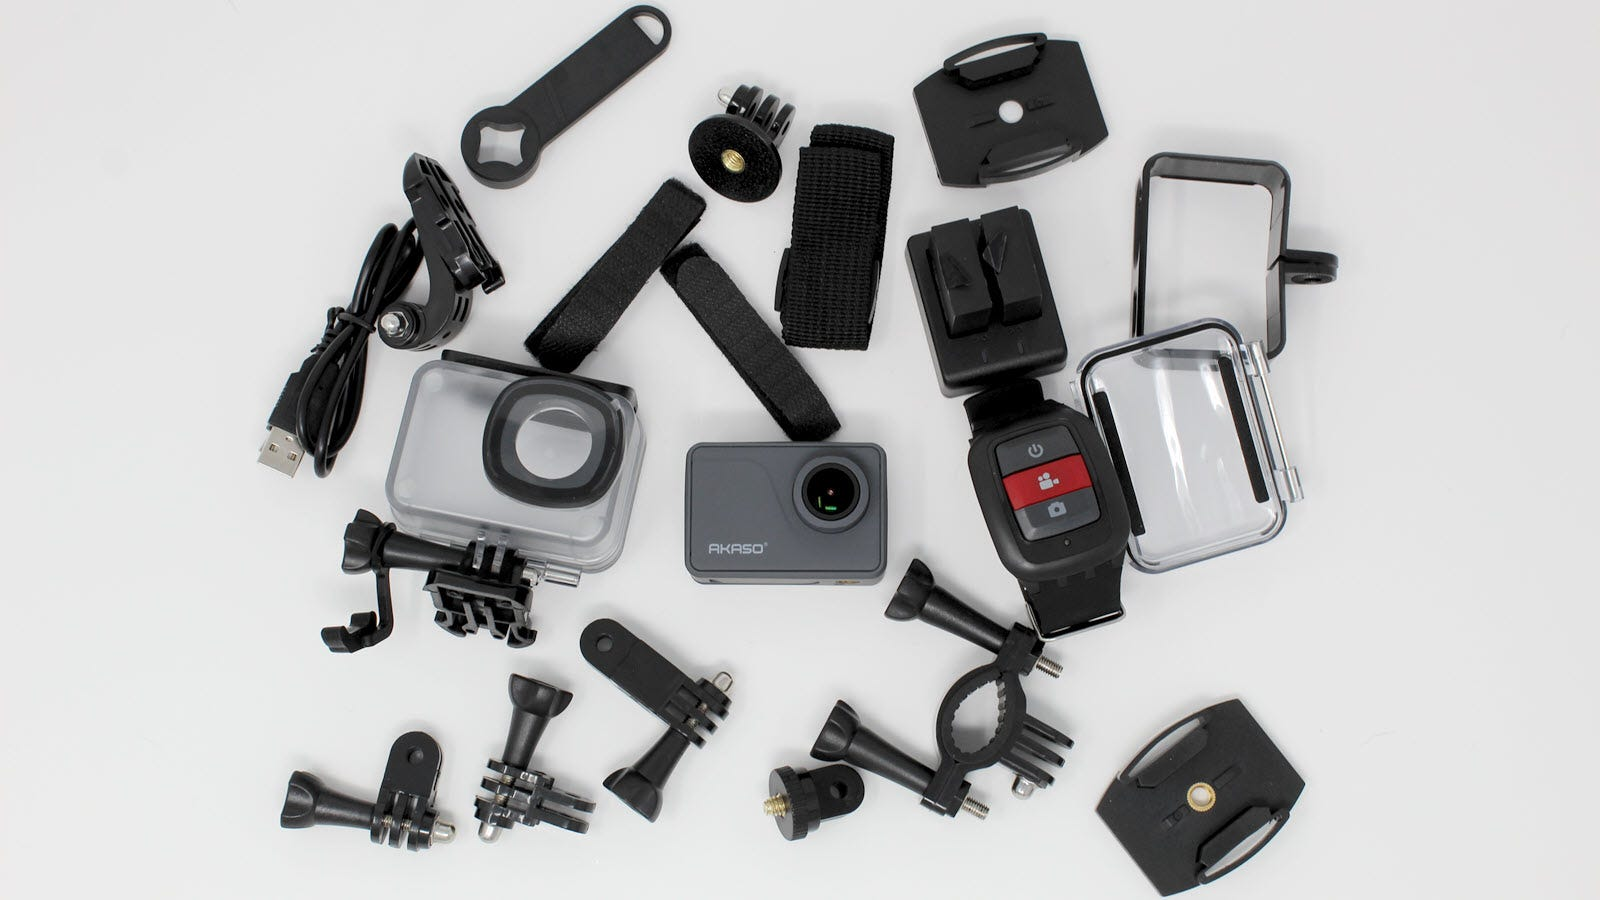 The Akaso V50, wrist remote, underwater case, mount housing, bike mounts, cables, two batteries, and other accessories.